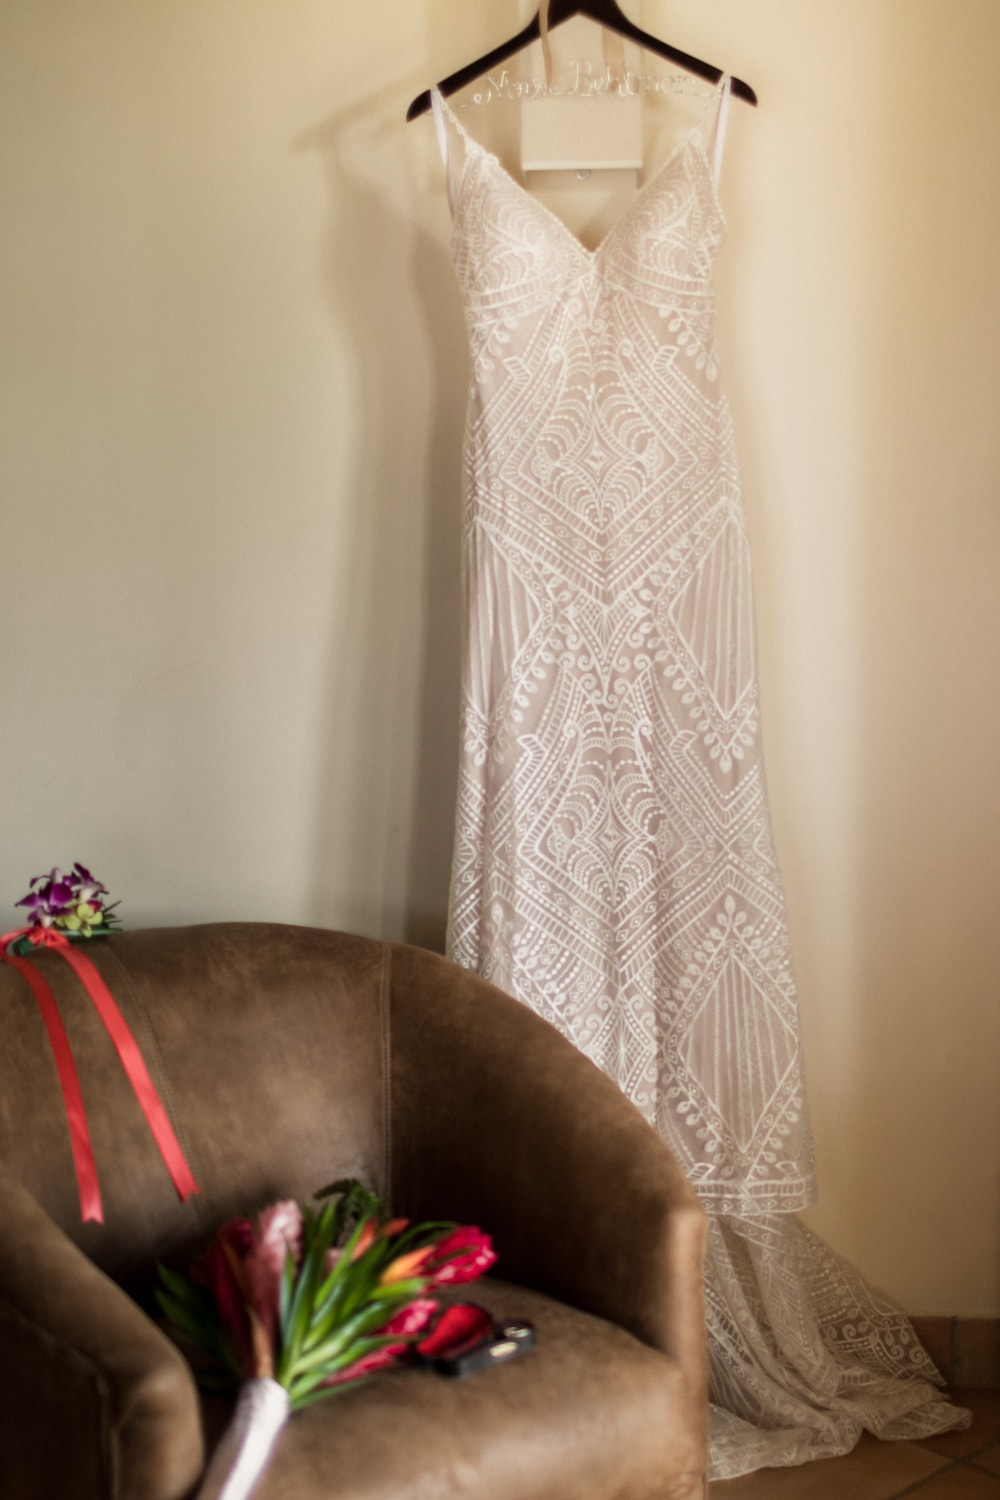 Photo of wedding dress hanging on wall in bridal suite.